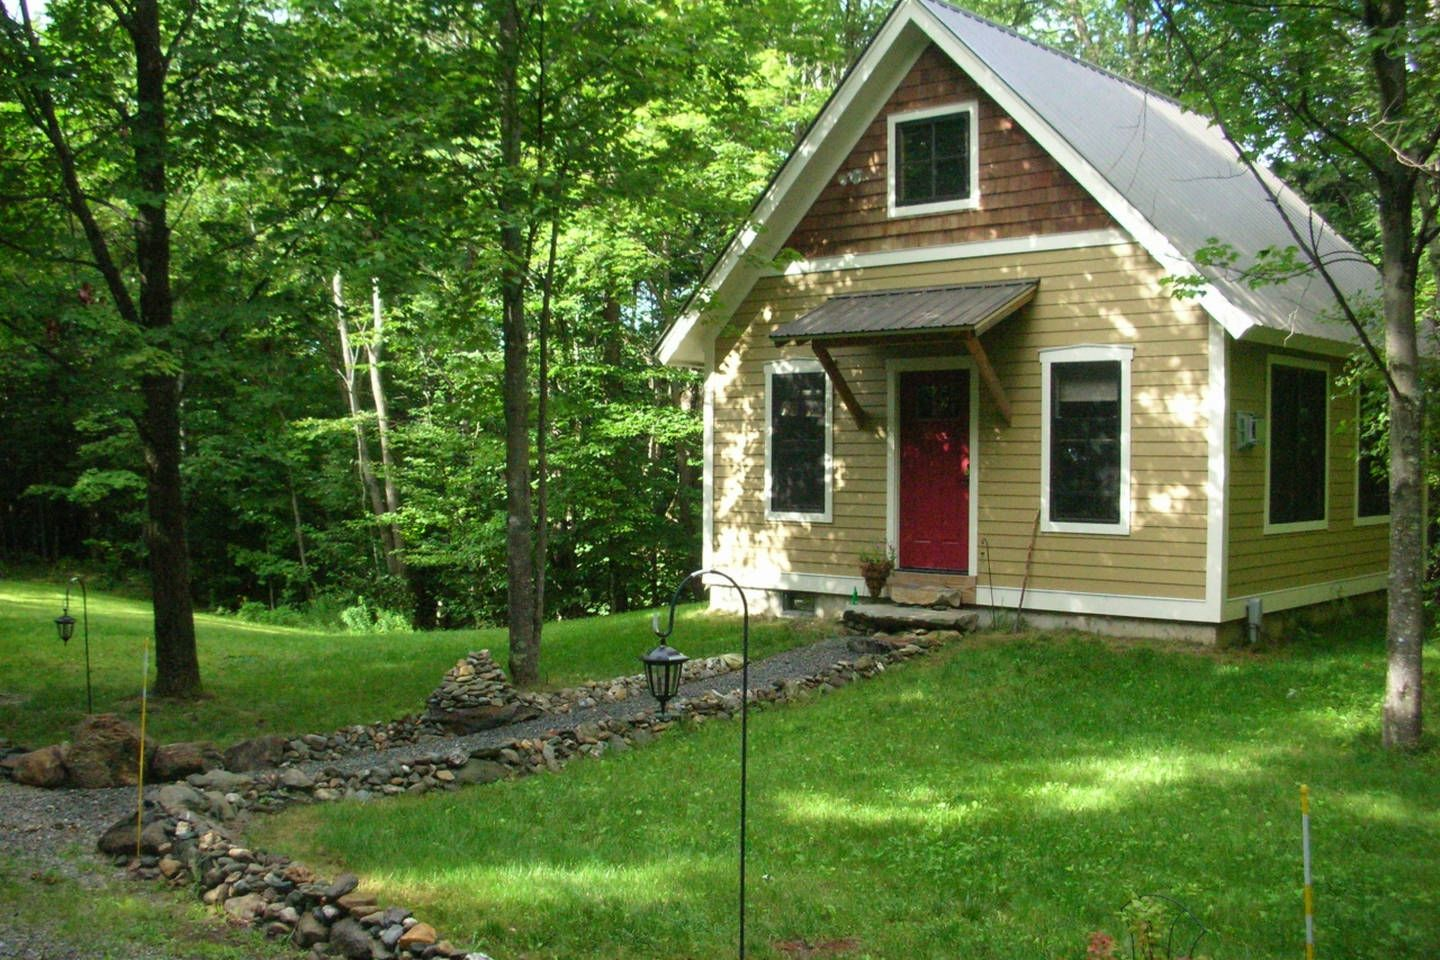 cabin ideas decoration inspiration home rentals small vermont fabulous decor rent cabins with designing for in luxury